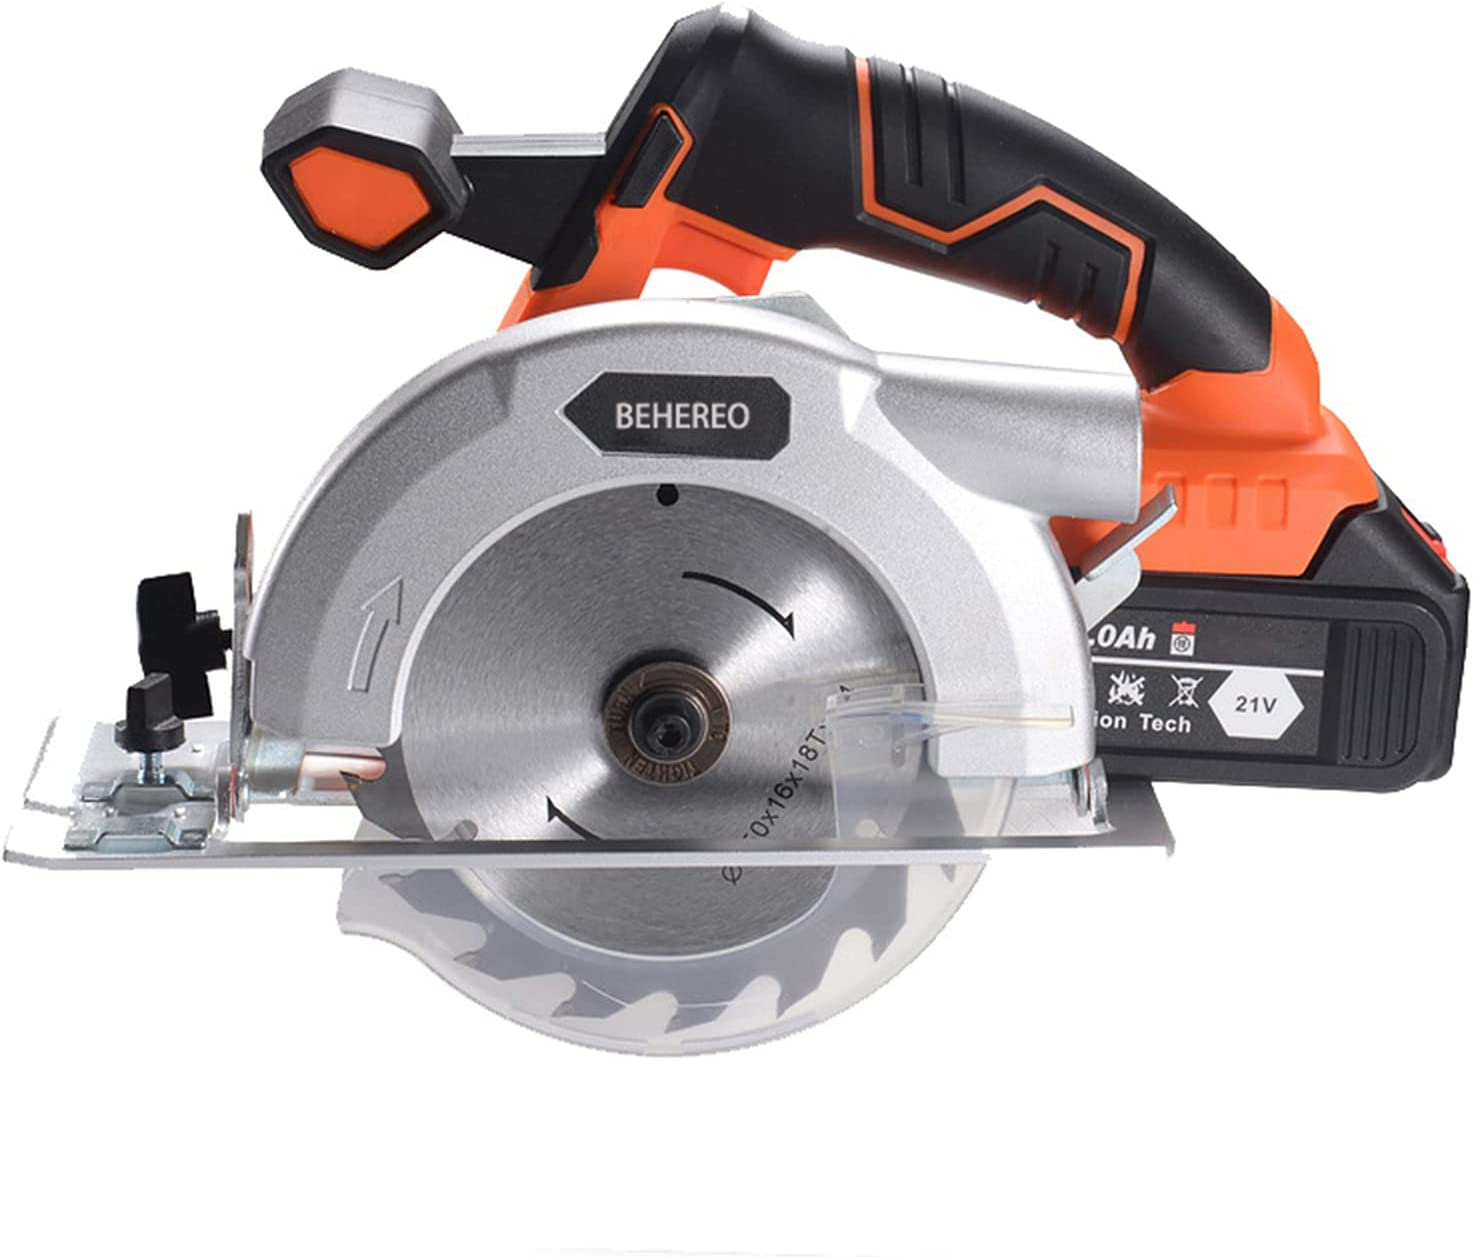 BEHEREO Power Tools Namely Circ Super intense SALE Saws Max 70% OFF Circular Battery-Powered